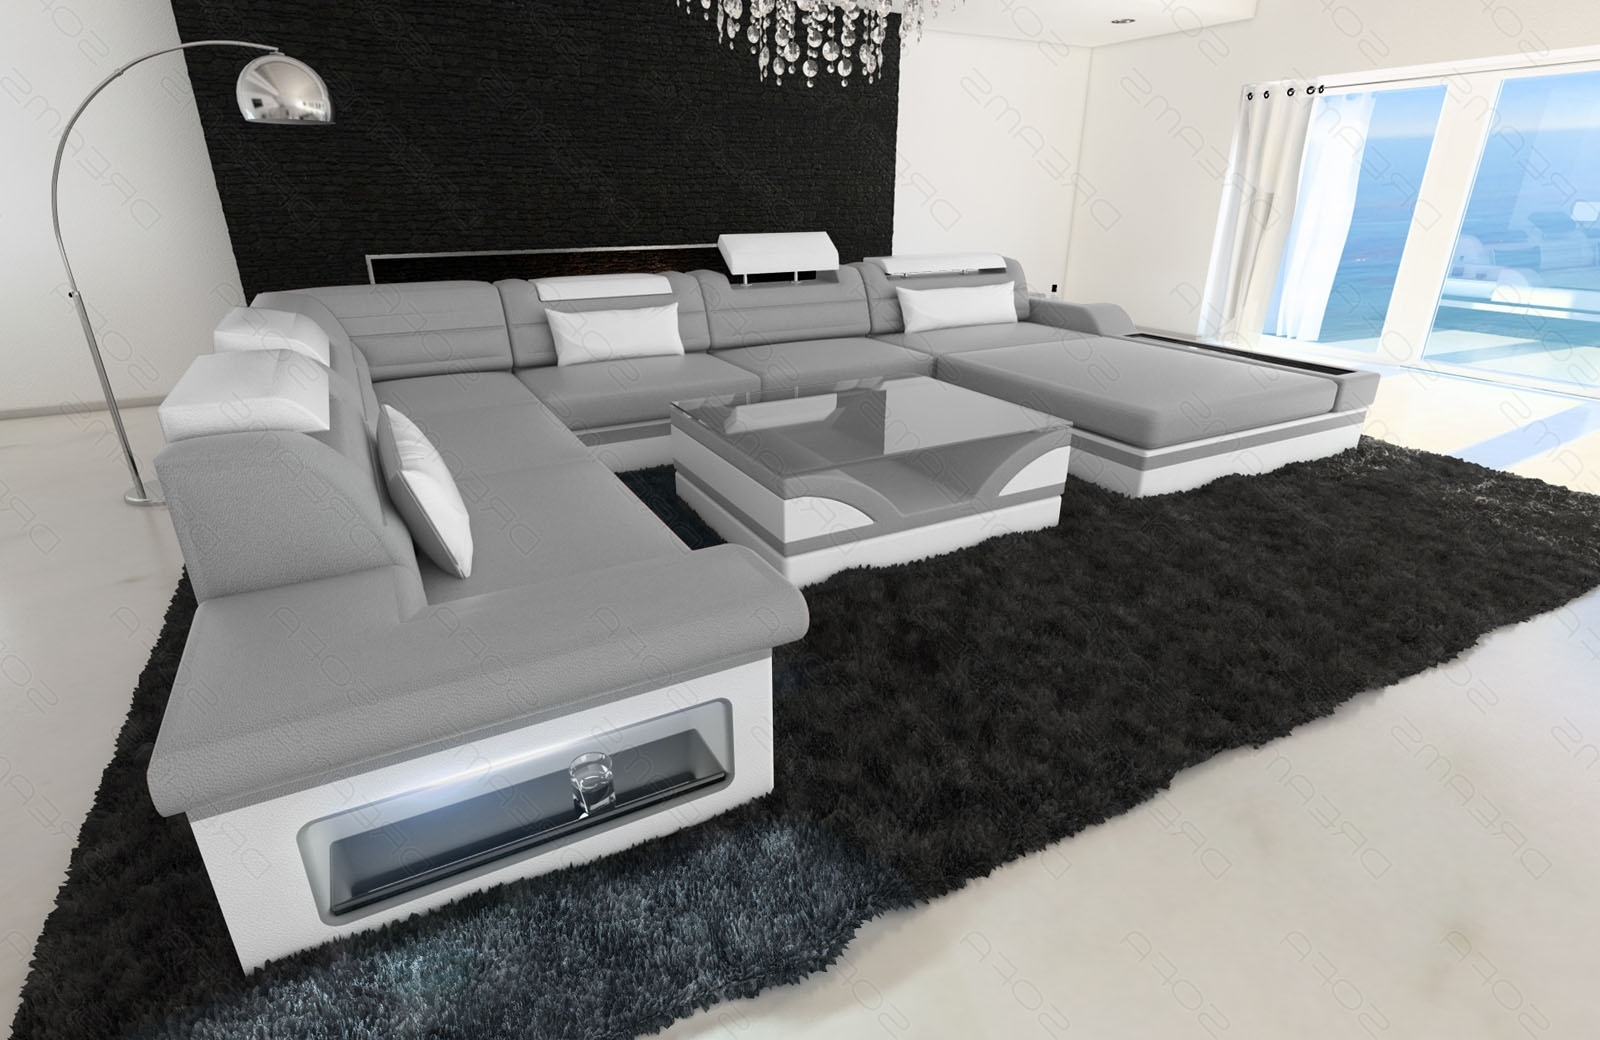 Luxury Sectional Sofas In Favorite Sofa Mezzo Xxl With Led Lights Genuine Leather Luxury Design (View 15 of 15)